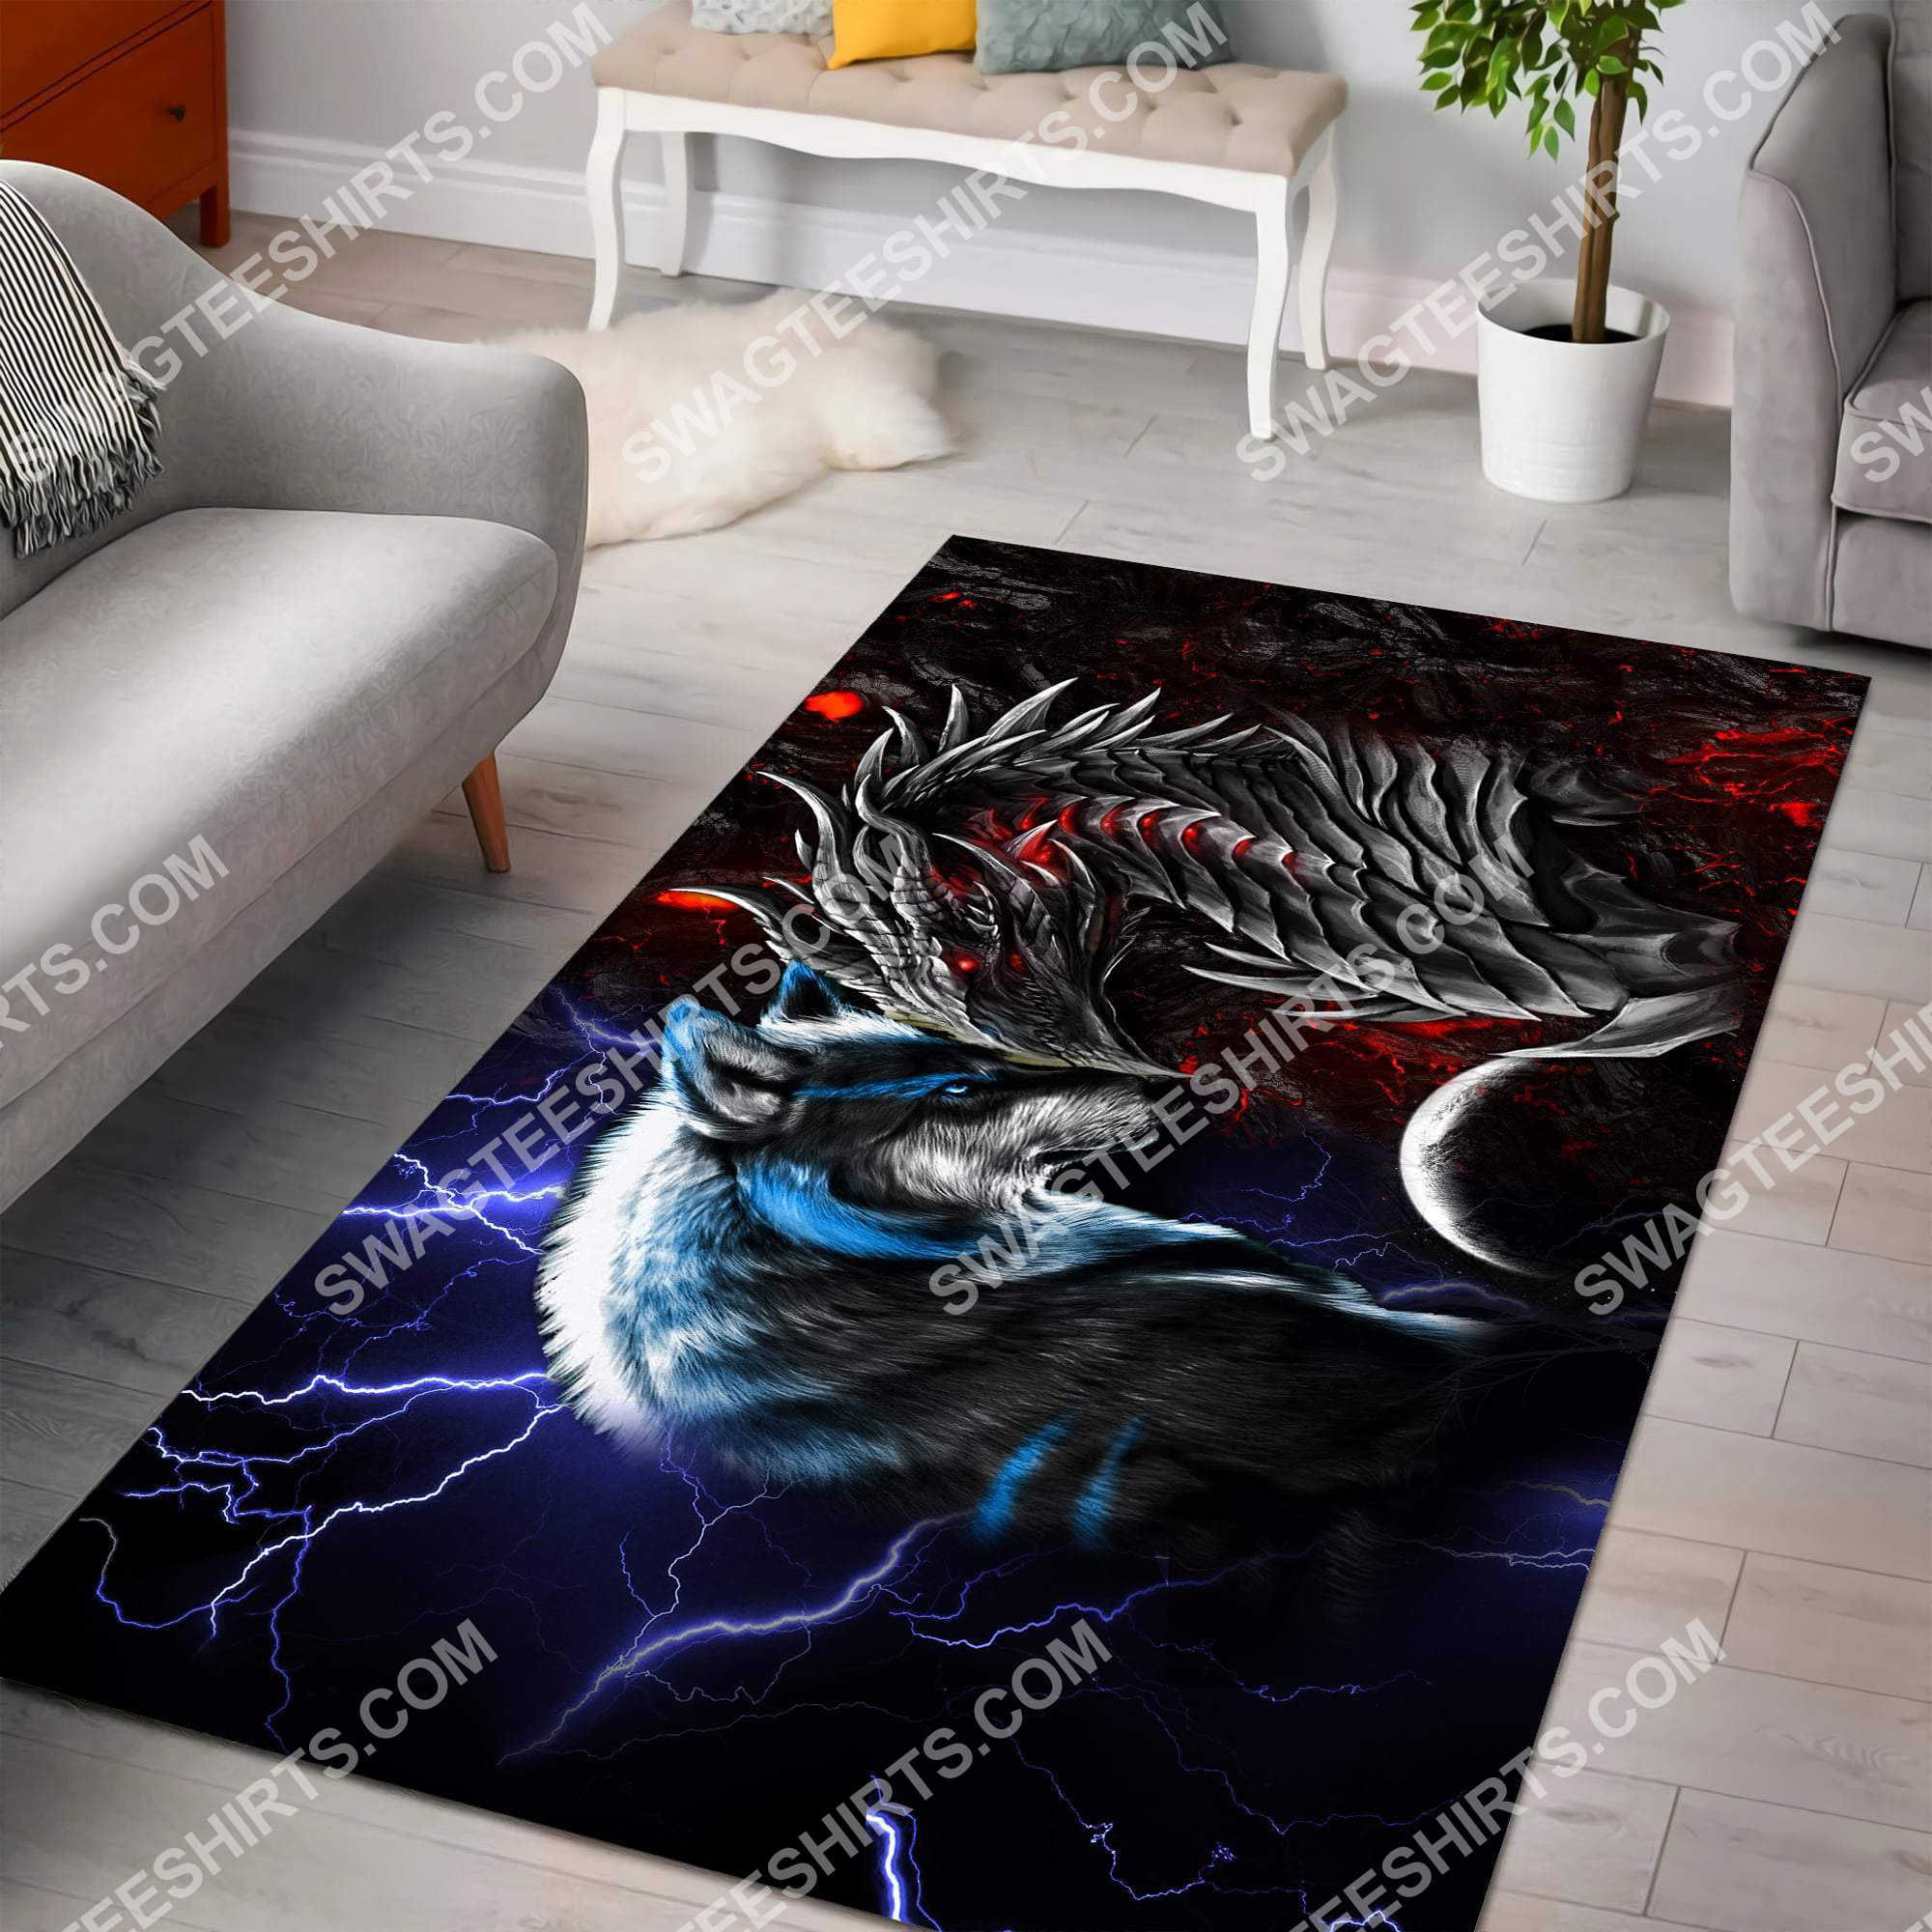 thunder and fire dragon and wolf all over printed rug 2(1)